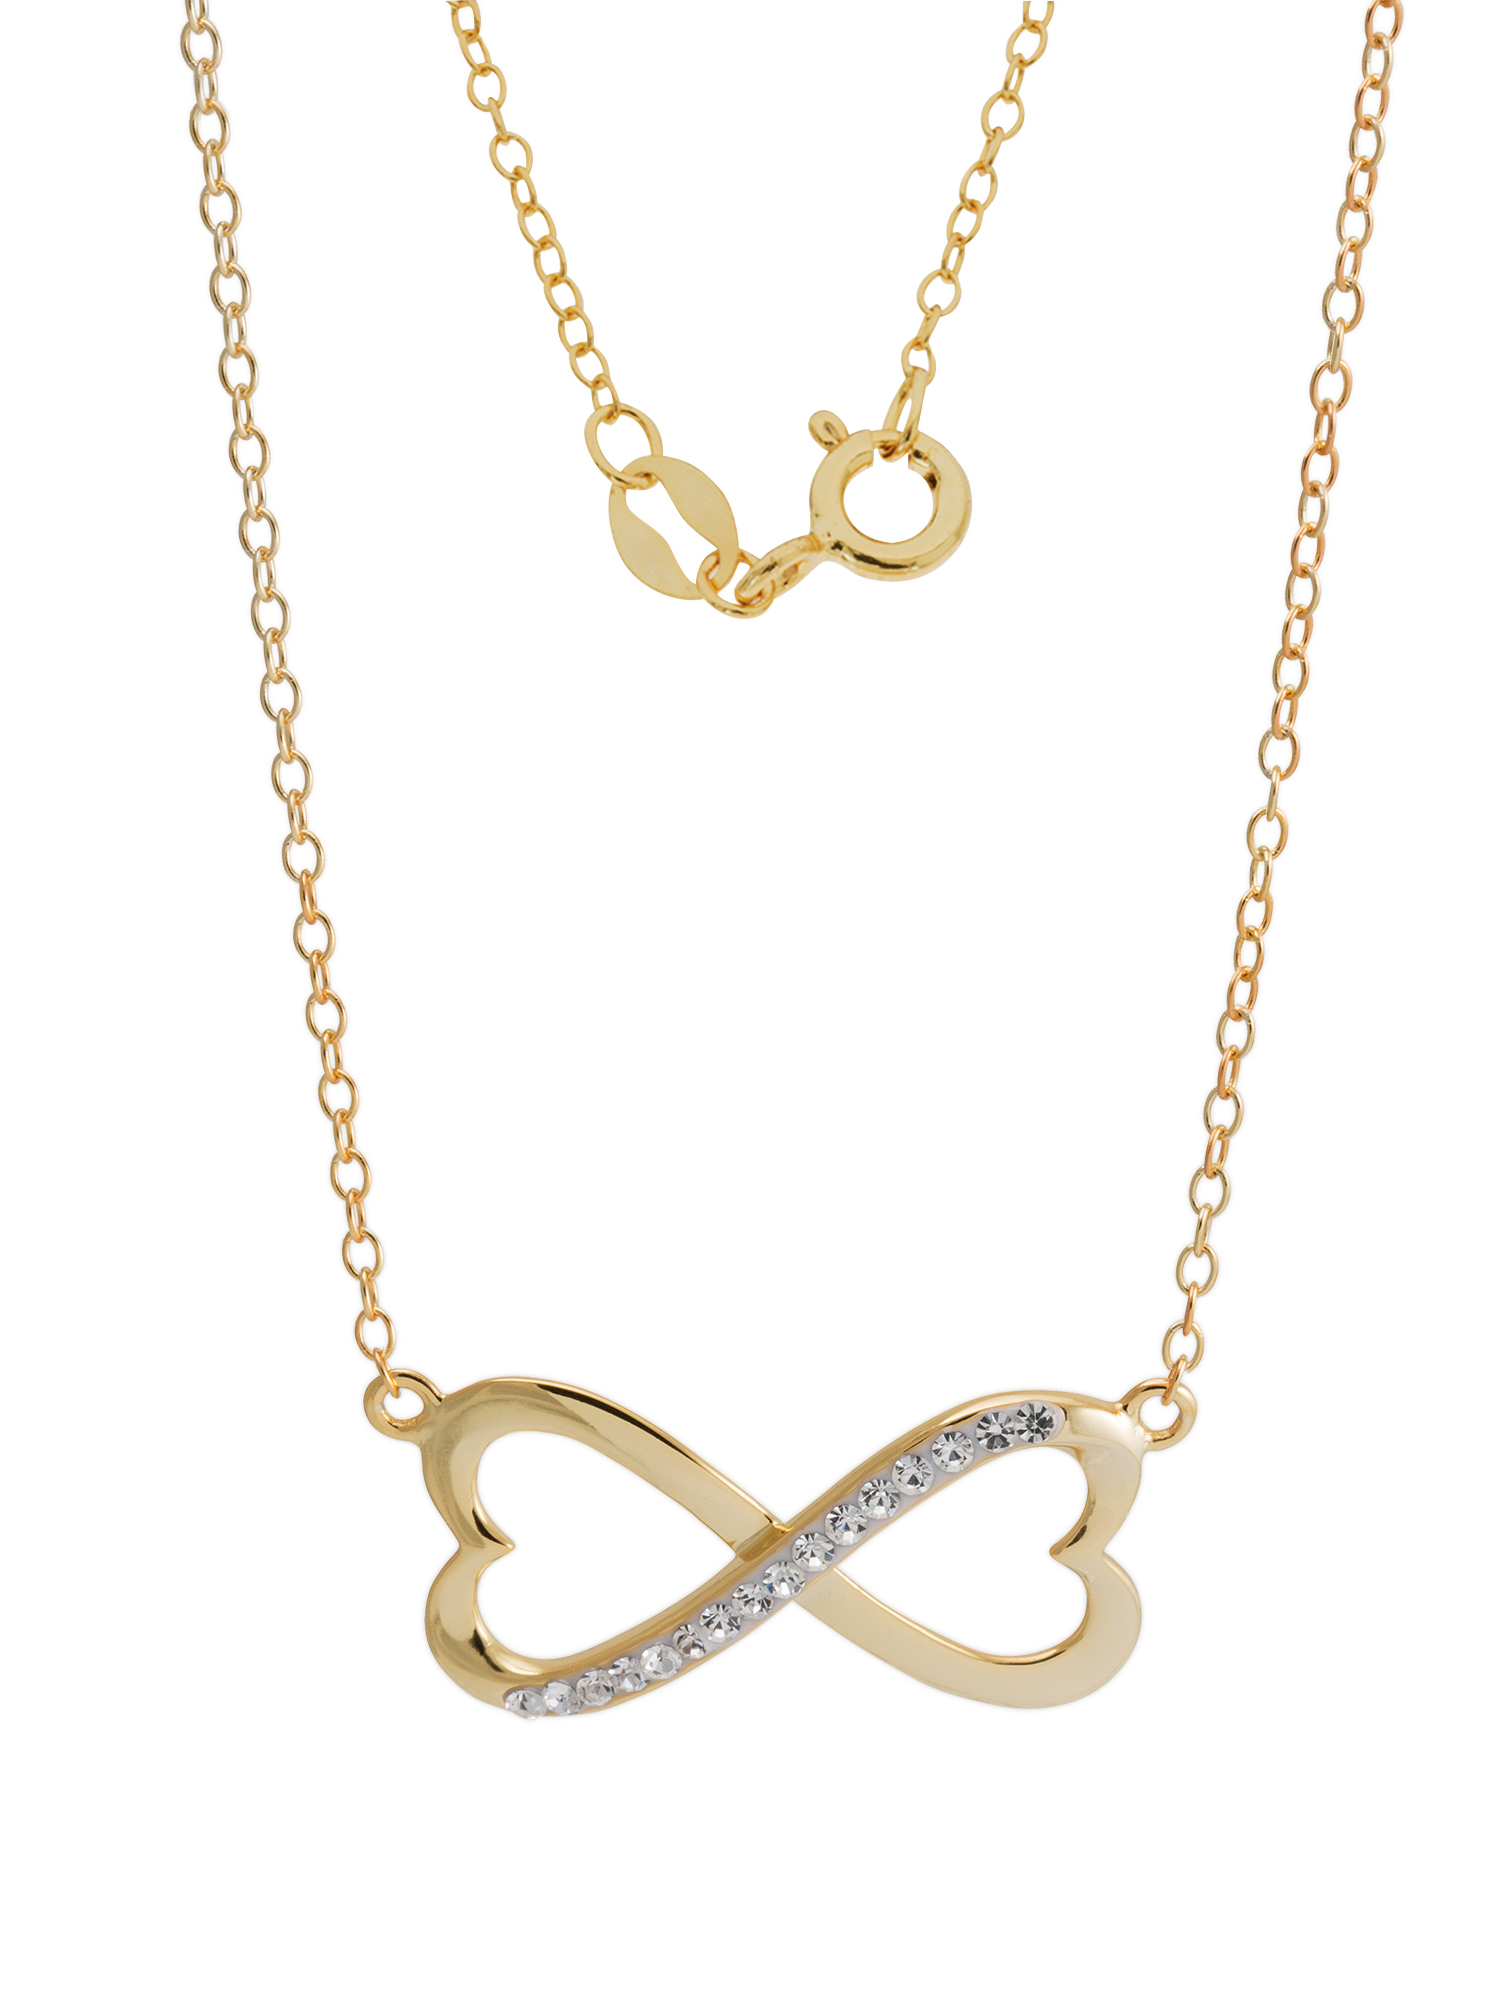 18Kt Gold Over Silver Clear Crystal Infinity/heart Necklace With Regard To Current Sparkling Infinity Locket Element Necklaces (View 2 of 25)